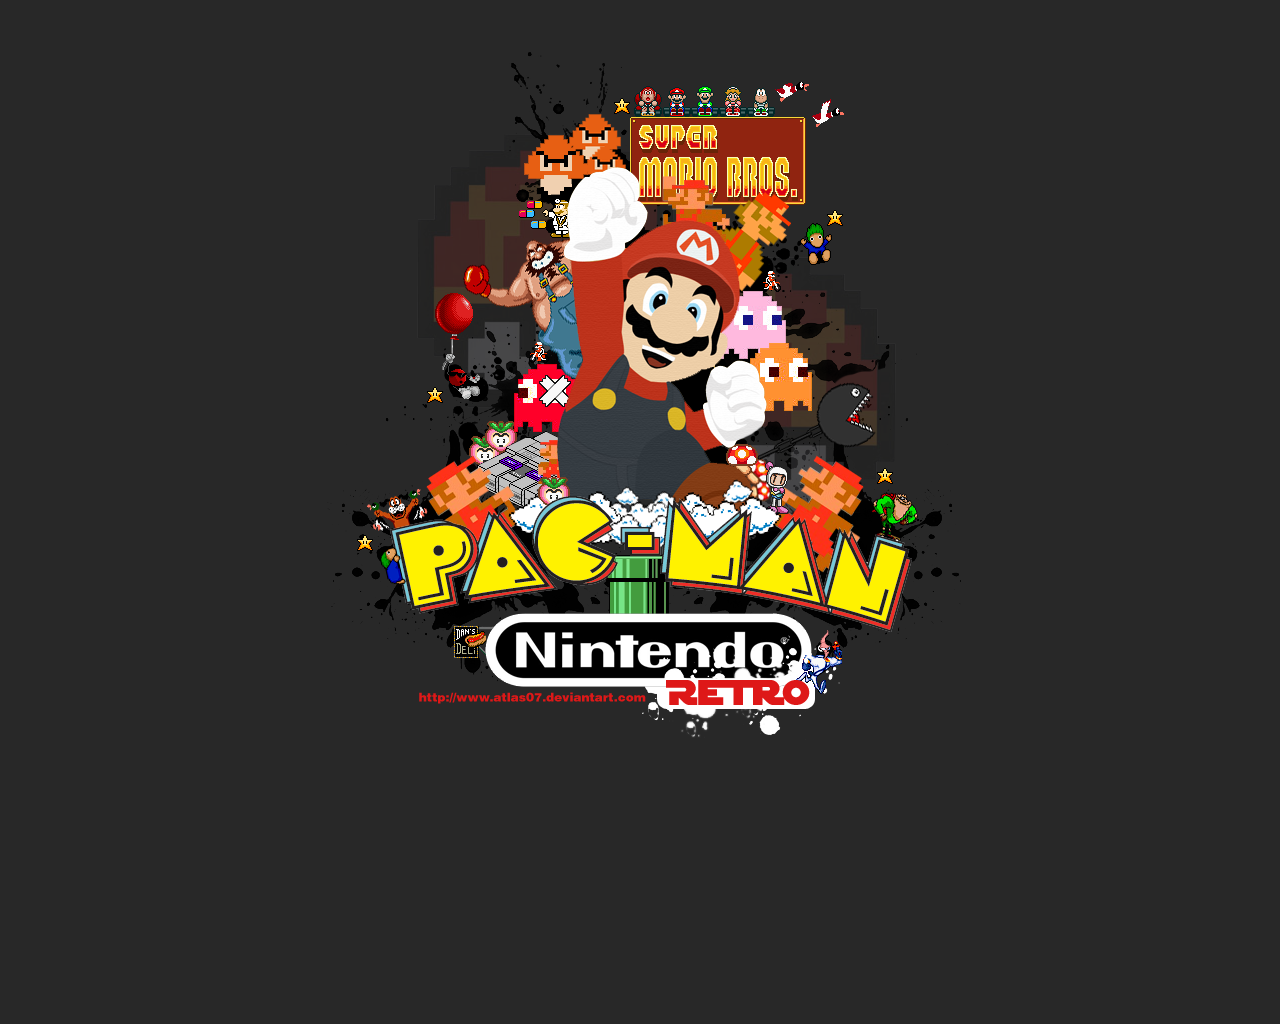 retro gaming wallpapers - photo #39